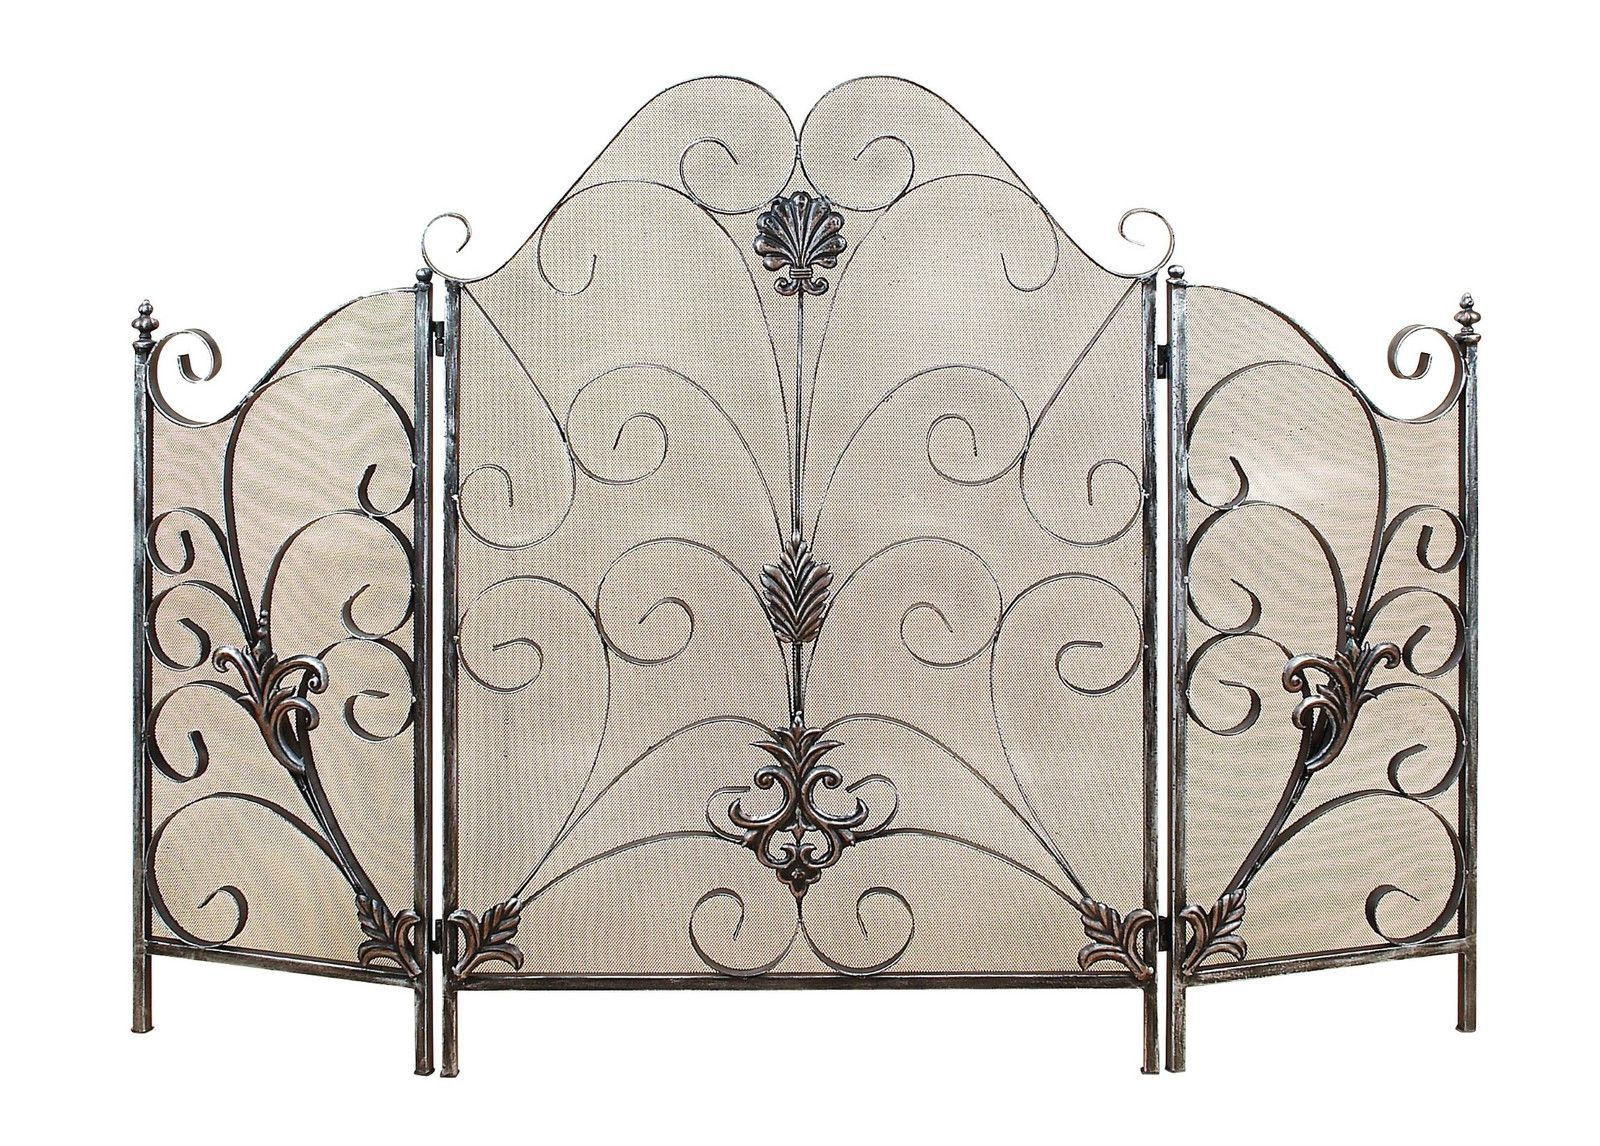 Elegant French Country Metal Scrollwork Fireplace Screen Home